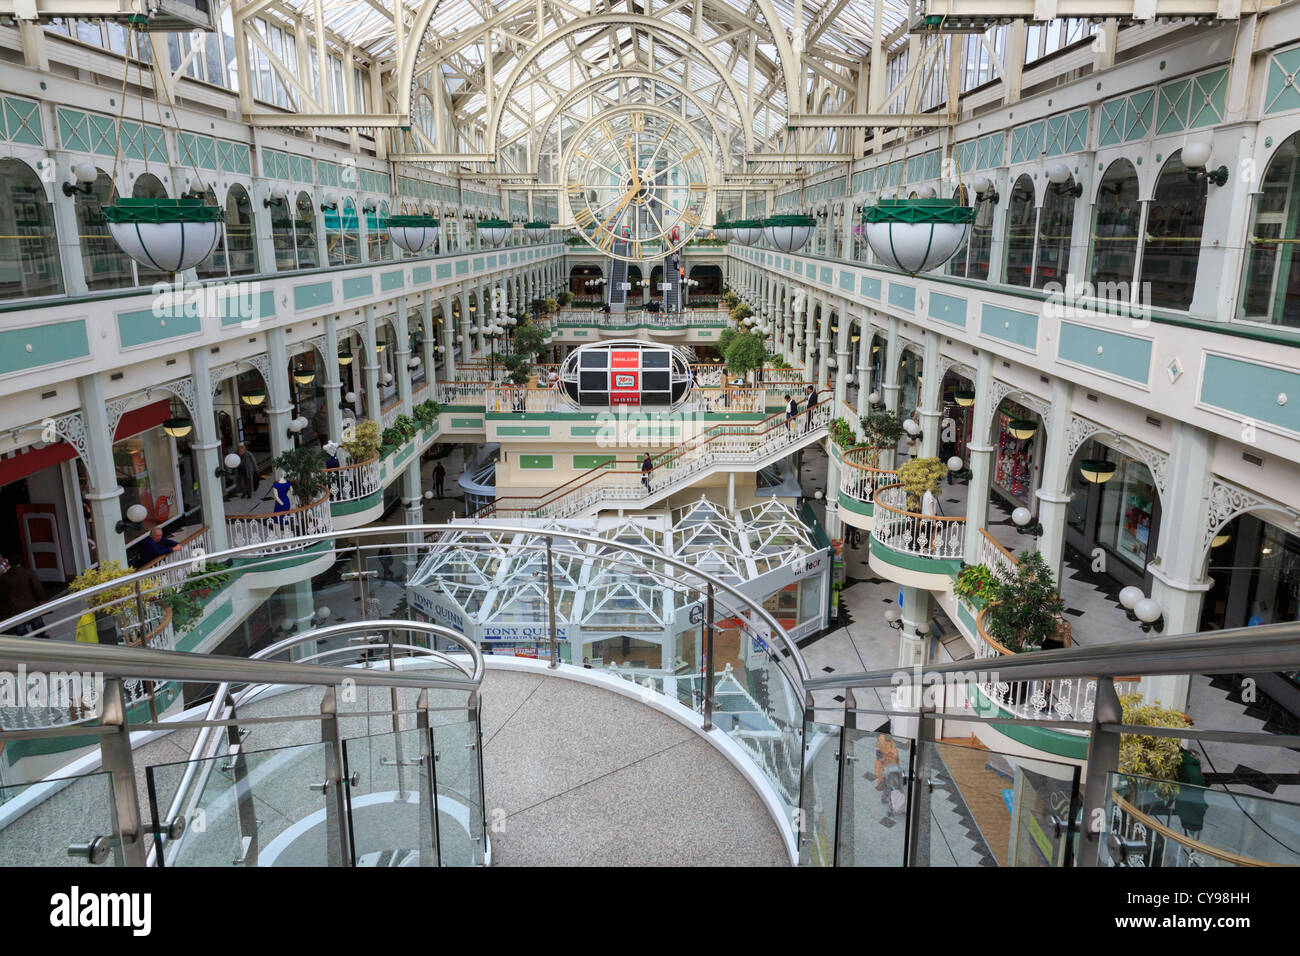 Staircase inside St Stephen's Green Shopping Centre with balconies on each side. Dublin, Southern Ireland, Eire - Stock Image